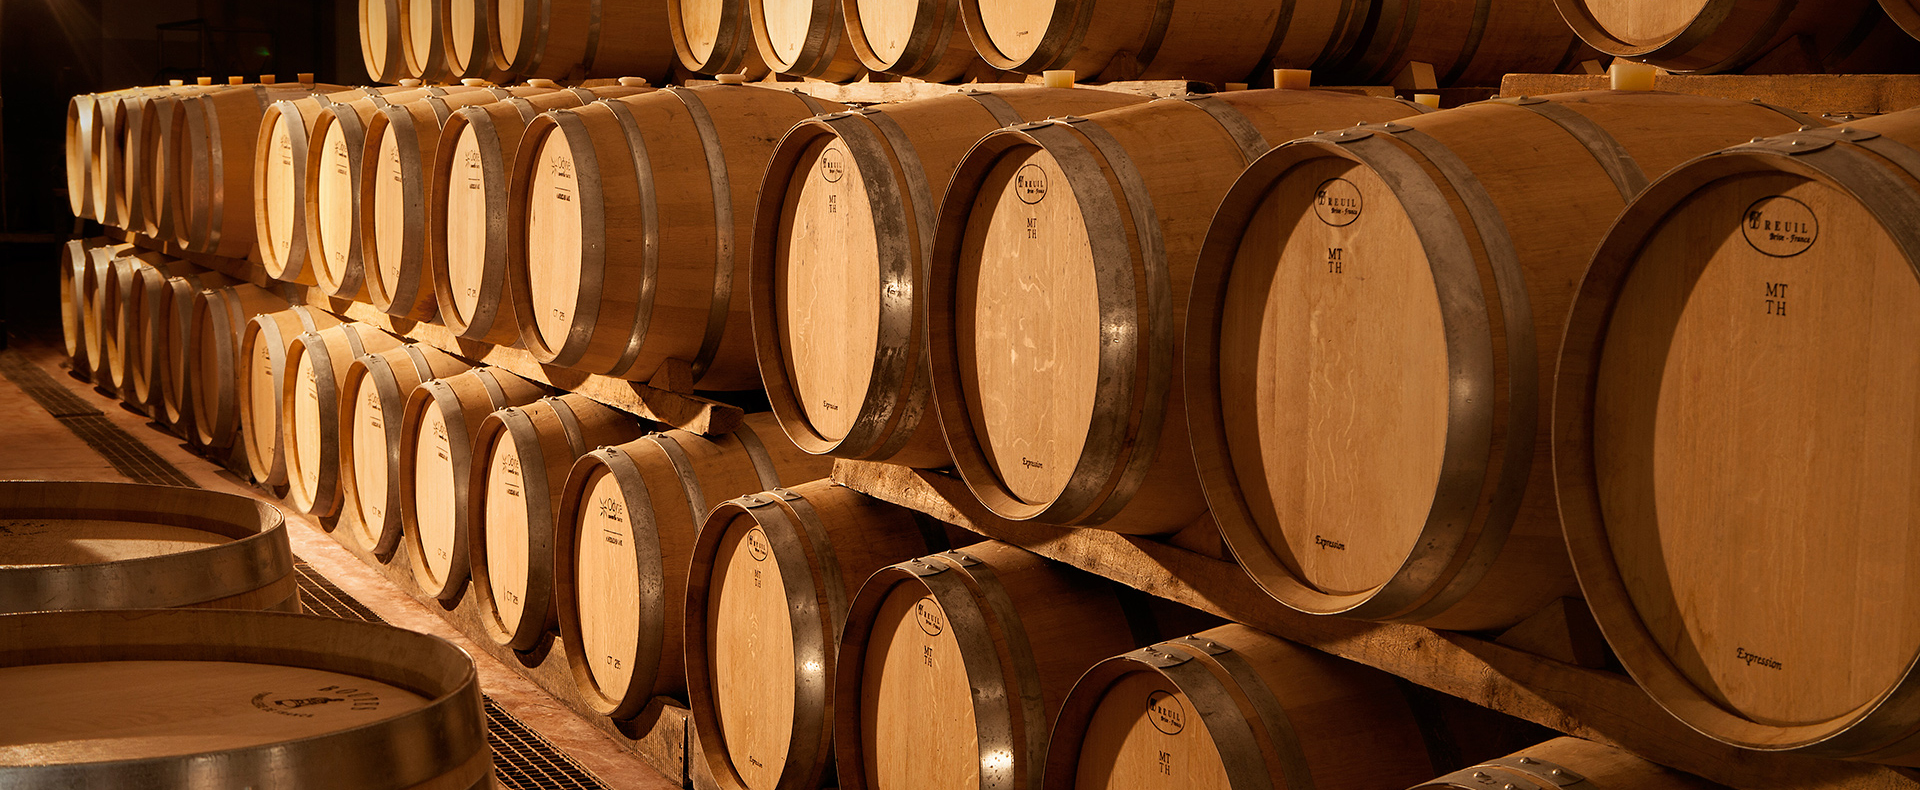 Gianni Cantele on barrique fermentation and aging